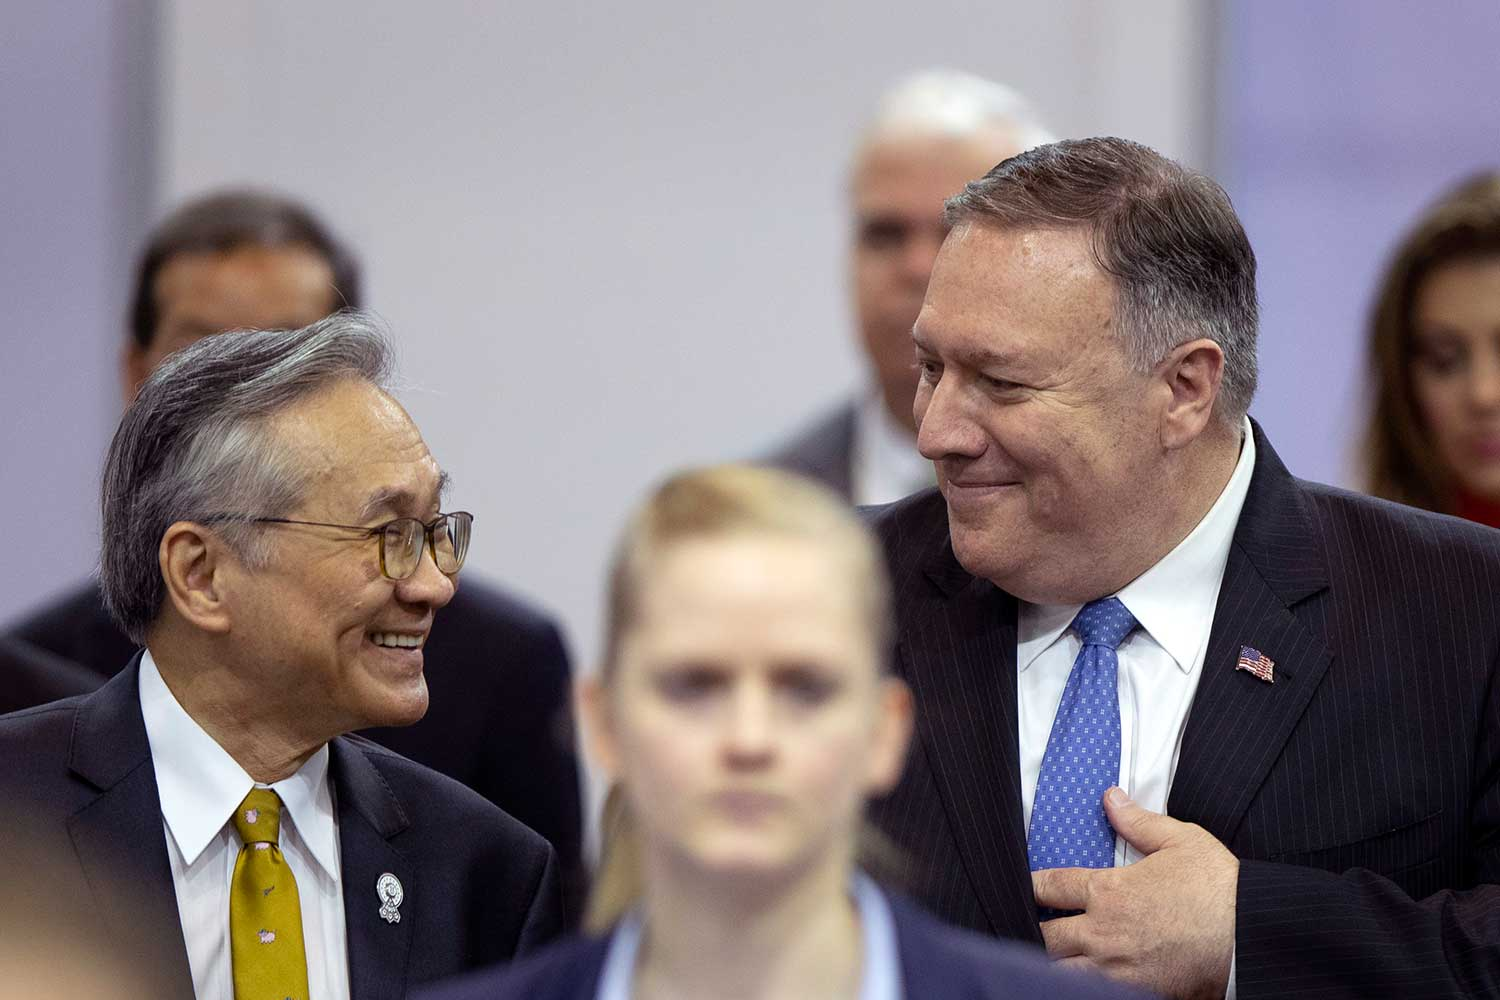 US Secretary of State Mike Pompeo and Foreign Minister Don Pramudwinai walk to hold a press conference during the Asean and affiliated meetings in Bangkok on Thursday. (AP photo)